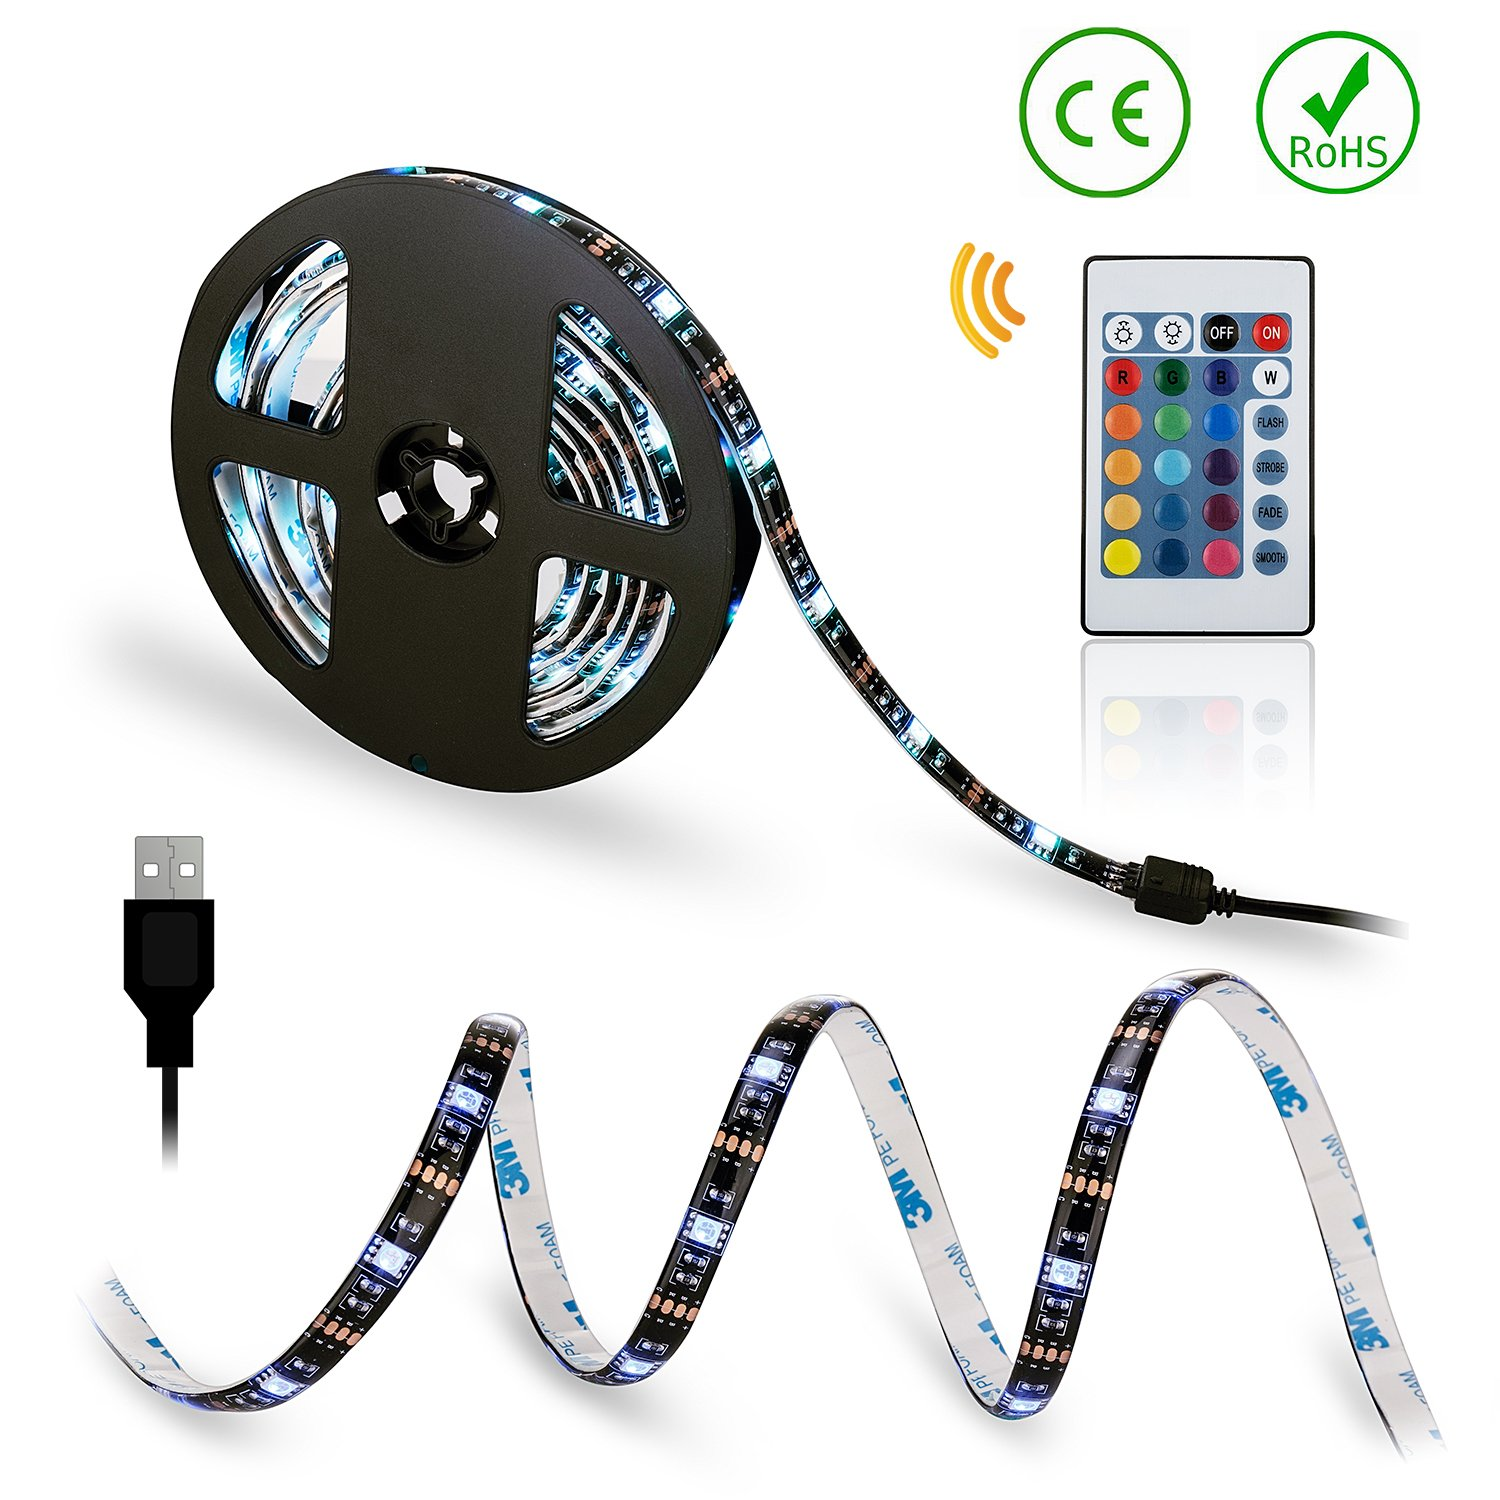 Flexible LED Light Strips Kit USB TV Backlight RGB Color with Remote Control Color Bias Lighting for HDTV Flat Screen TV Accessories Desktop Monitors PC (2 x 40-inch light bar)